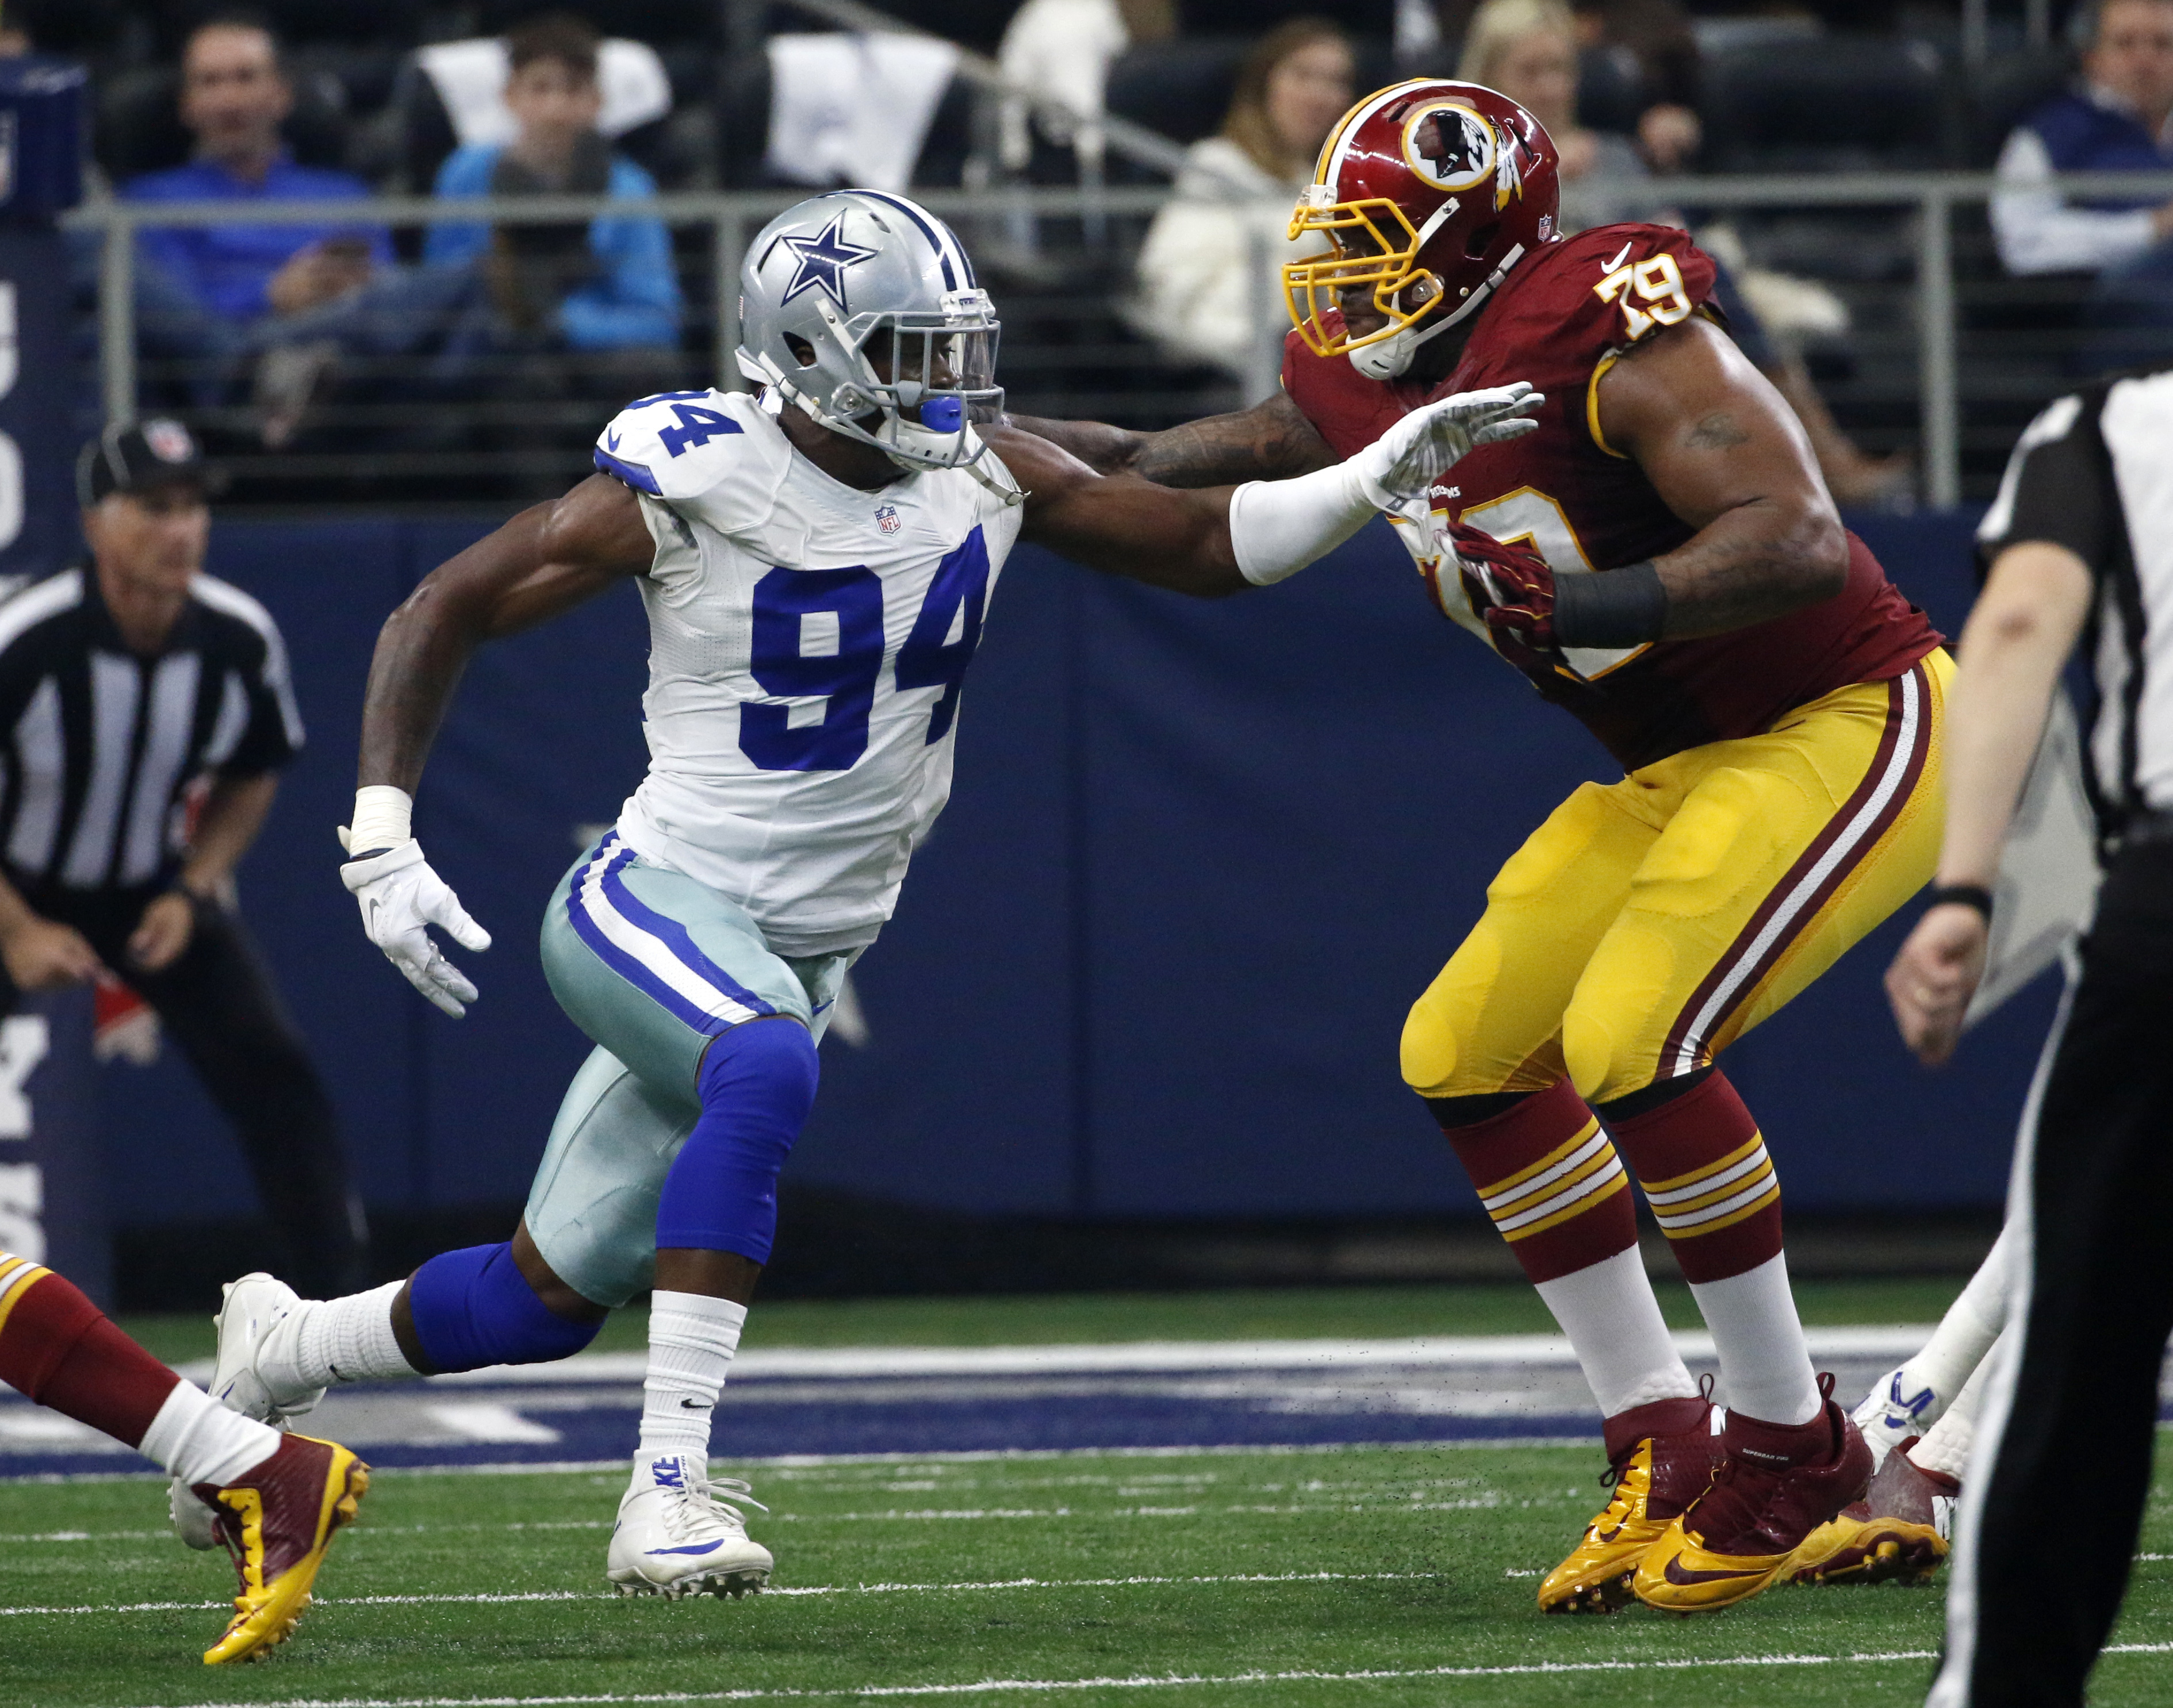 In this photo taken Jan. 3, 2016, Washington Redskins tackle Ty Nsekhe (79) blocks Dallas Cowboys defensive end Randy Gregory (94) during an NFL football game in Arlington, Texas. Not too long ago, Nsekhe was making $150 a week playing arena football and